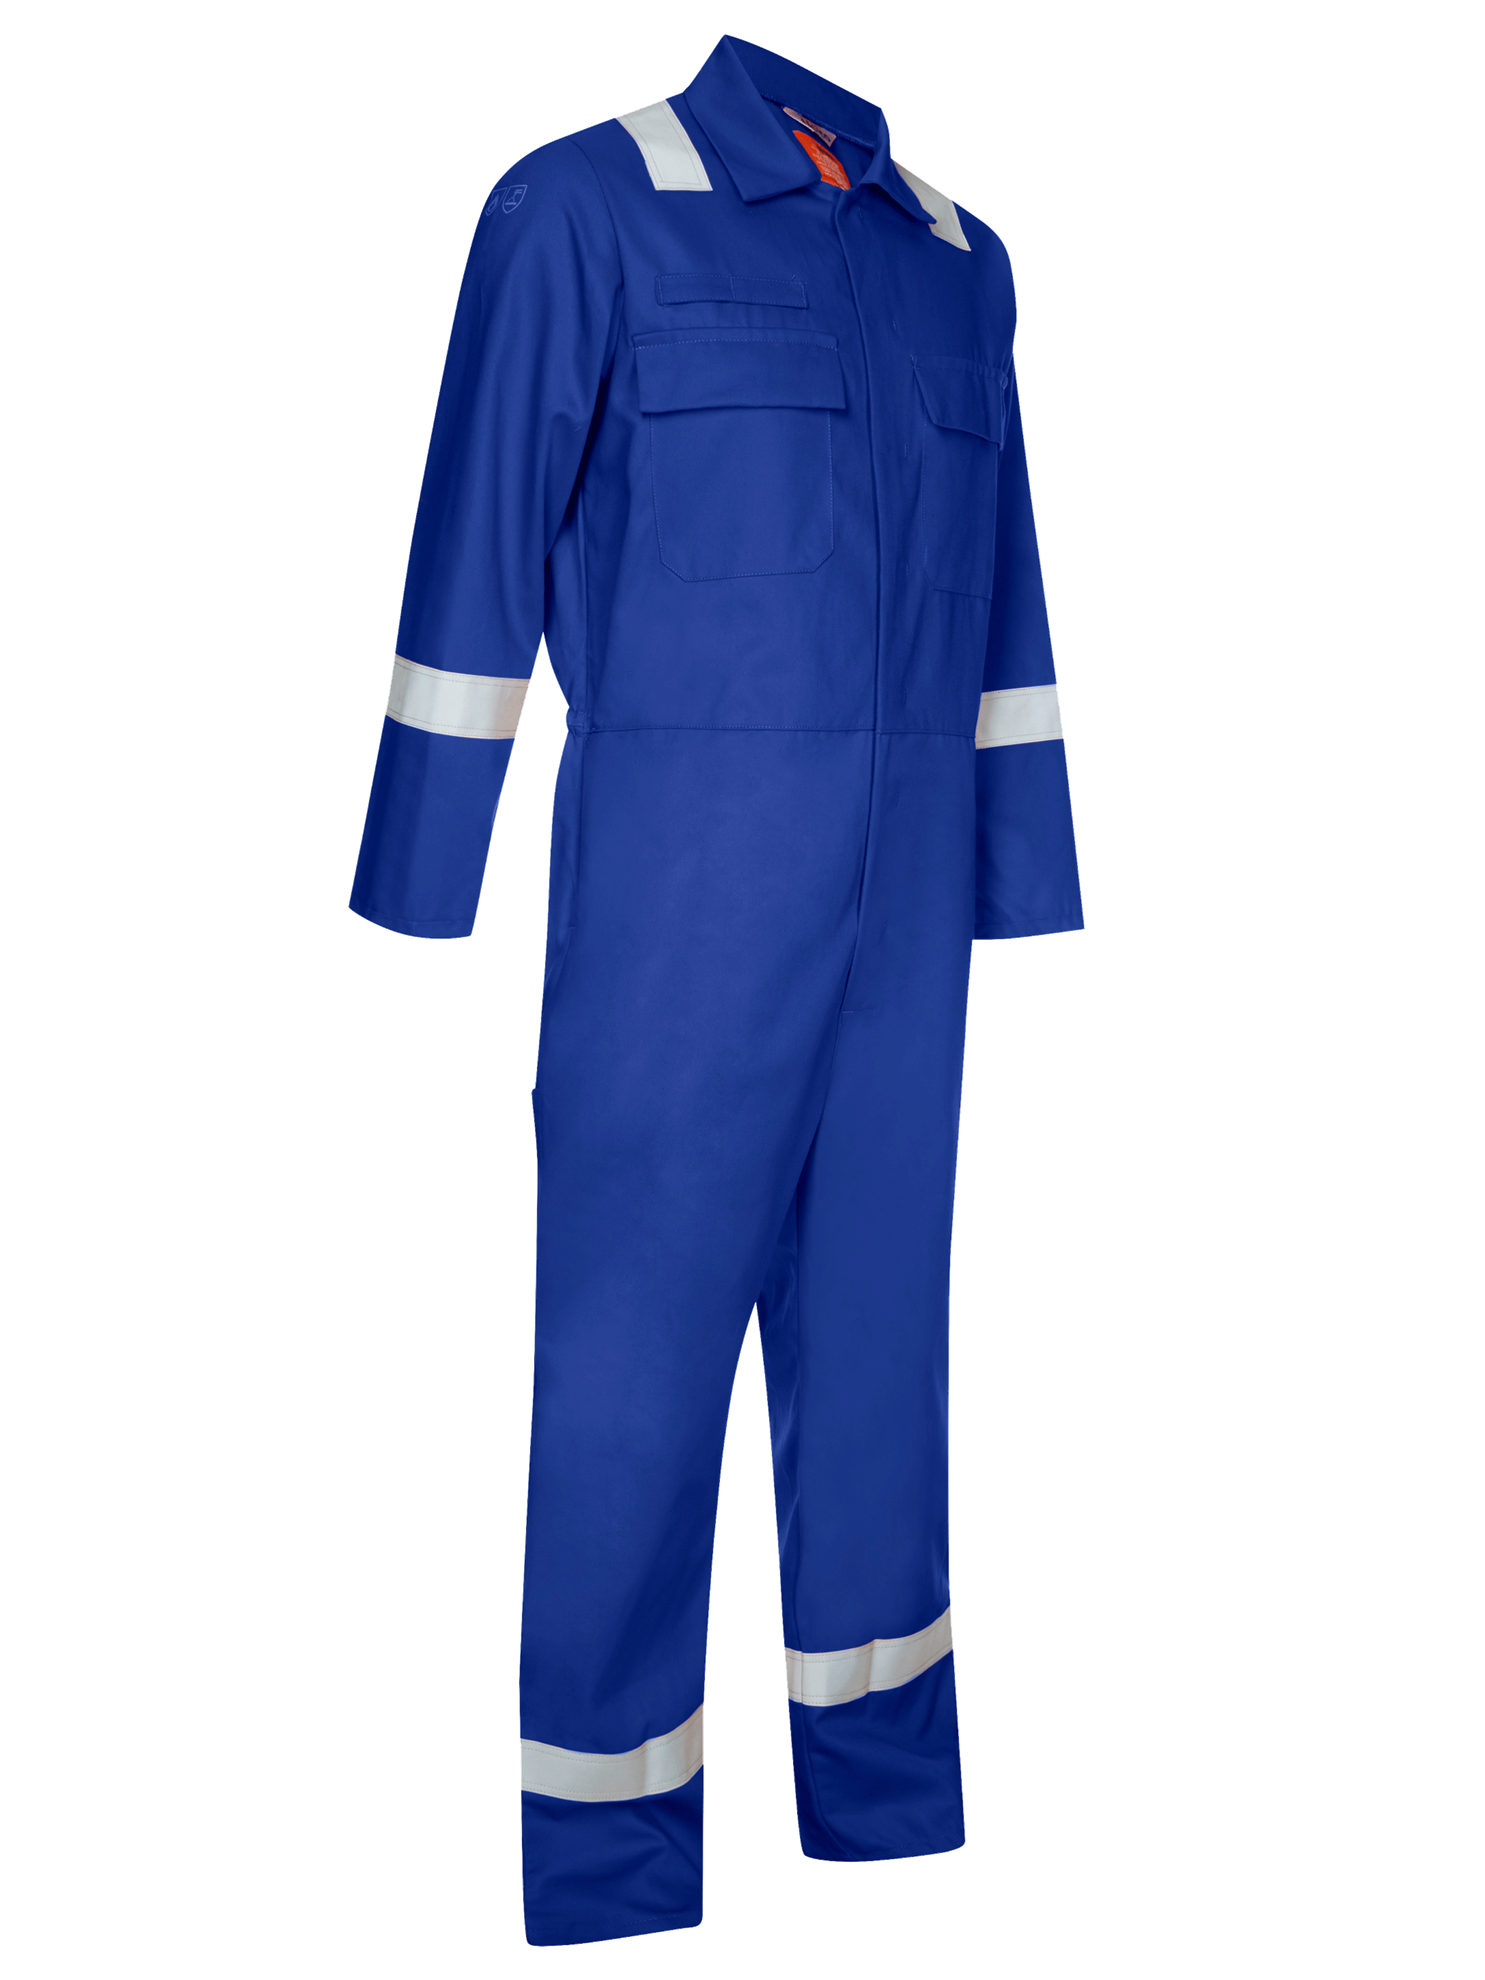 Picture of Coverall made with Phoenix - Royal Blue